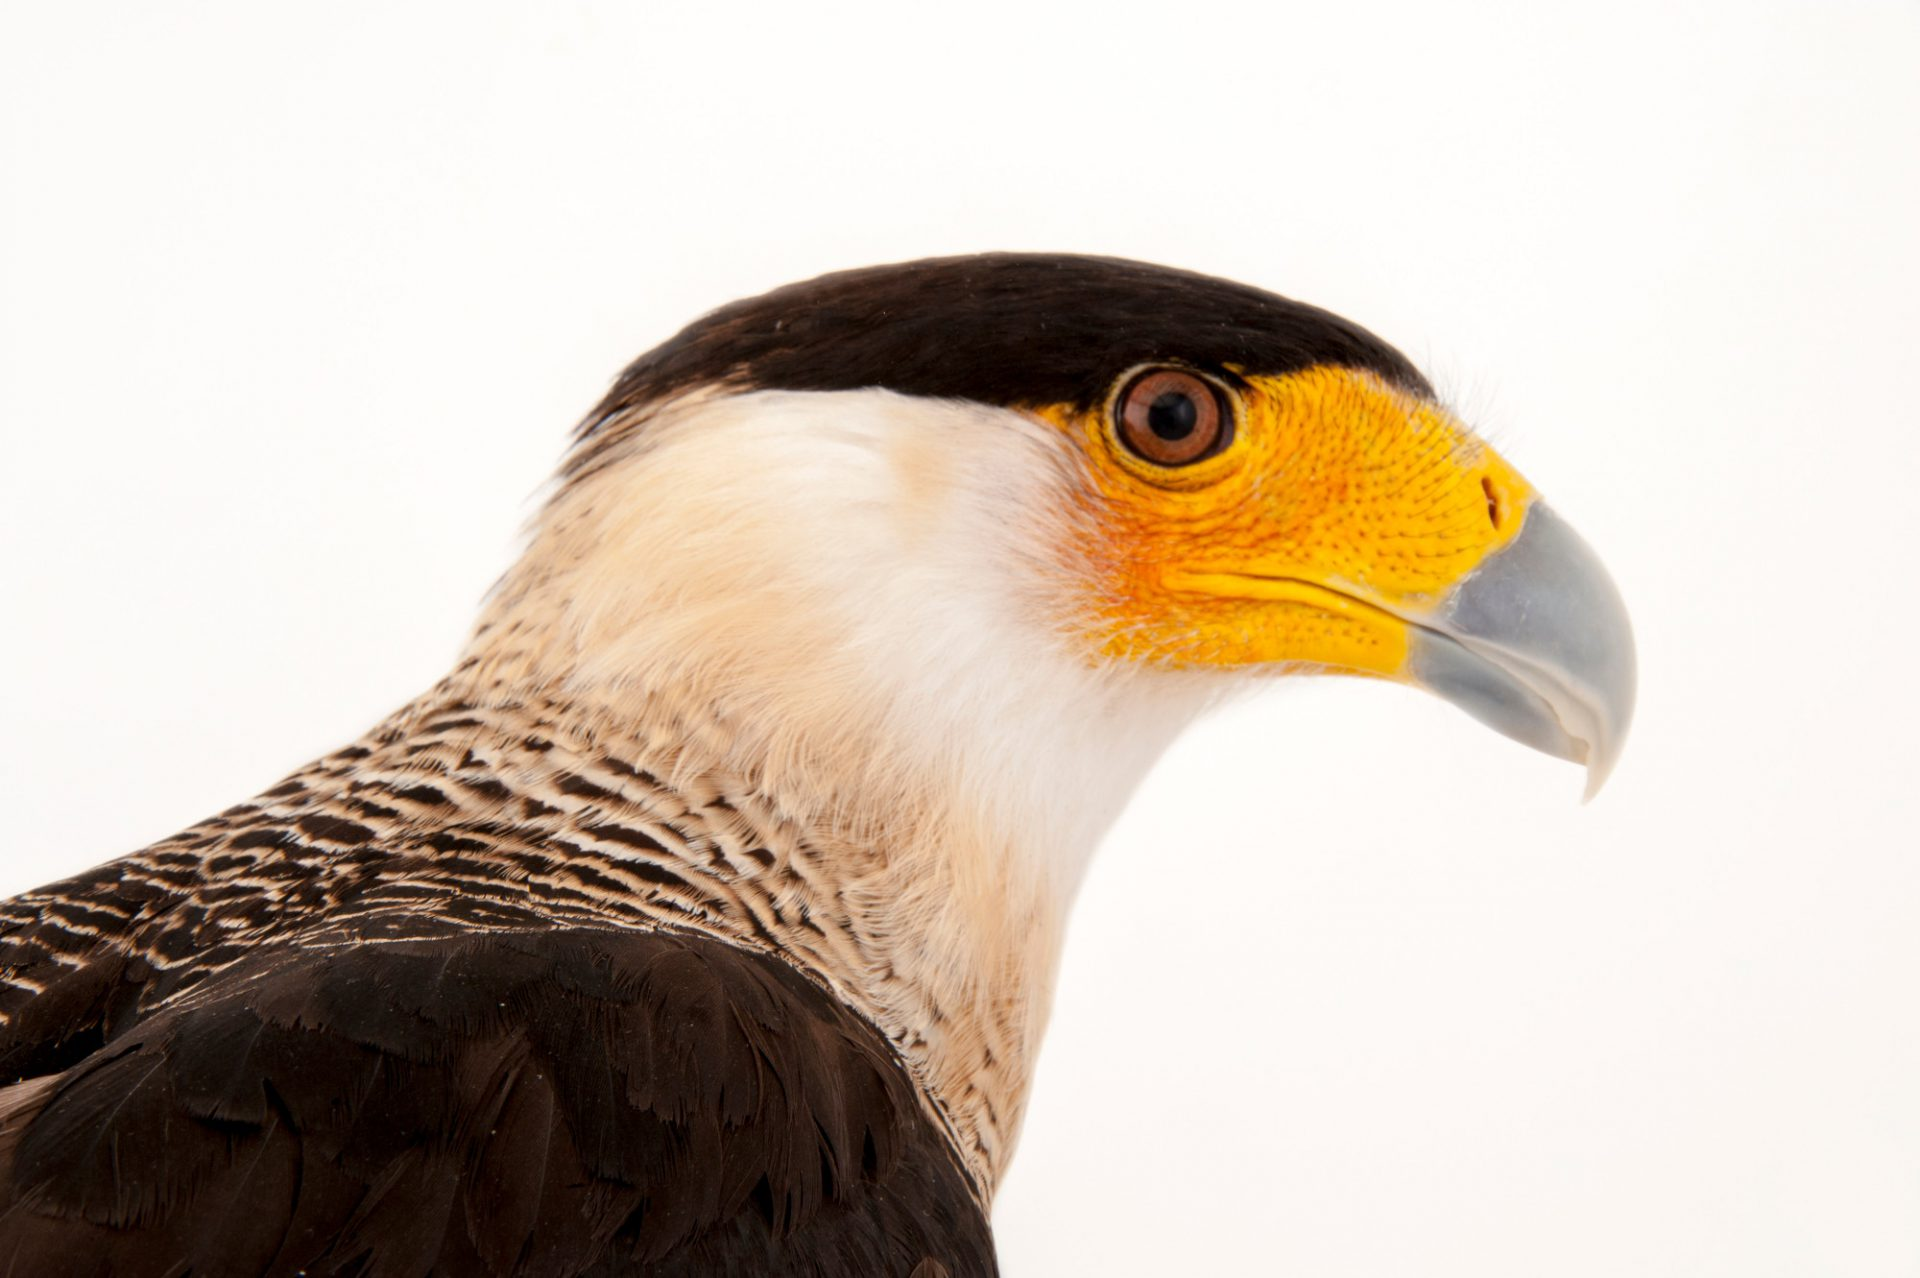 A southern crested caracara (Caracara plancus) at the Gladys Porter Zoo in Brownsville, Texas.